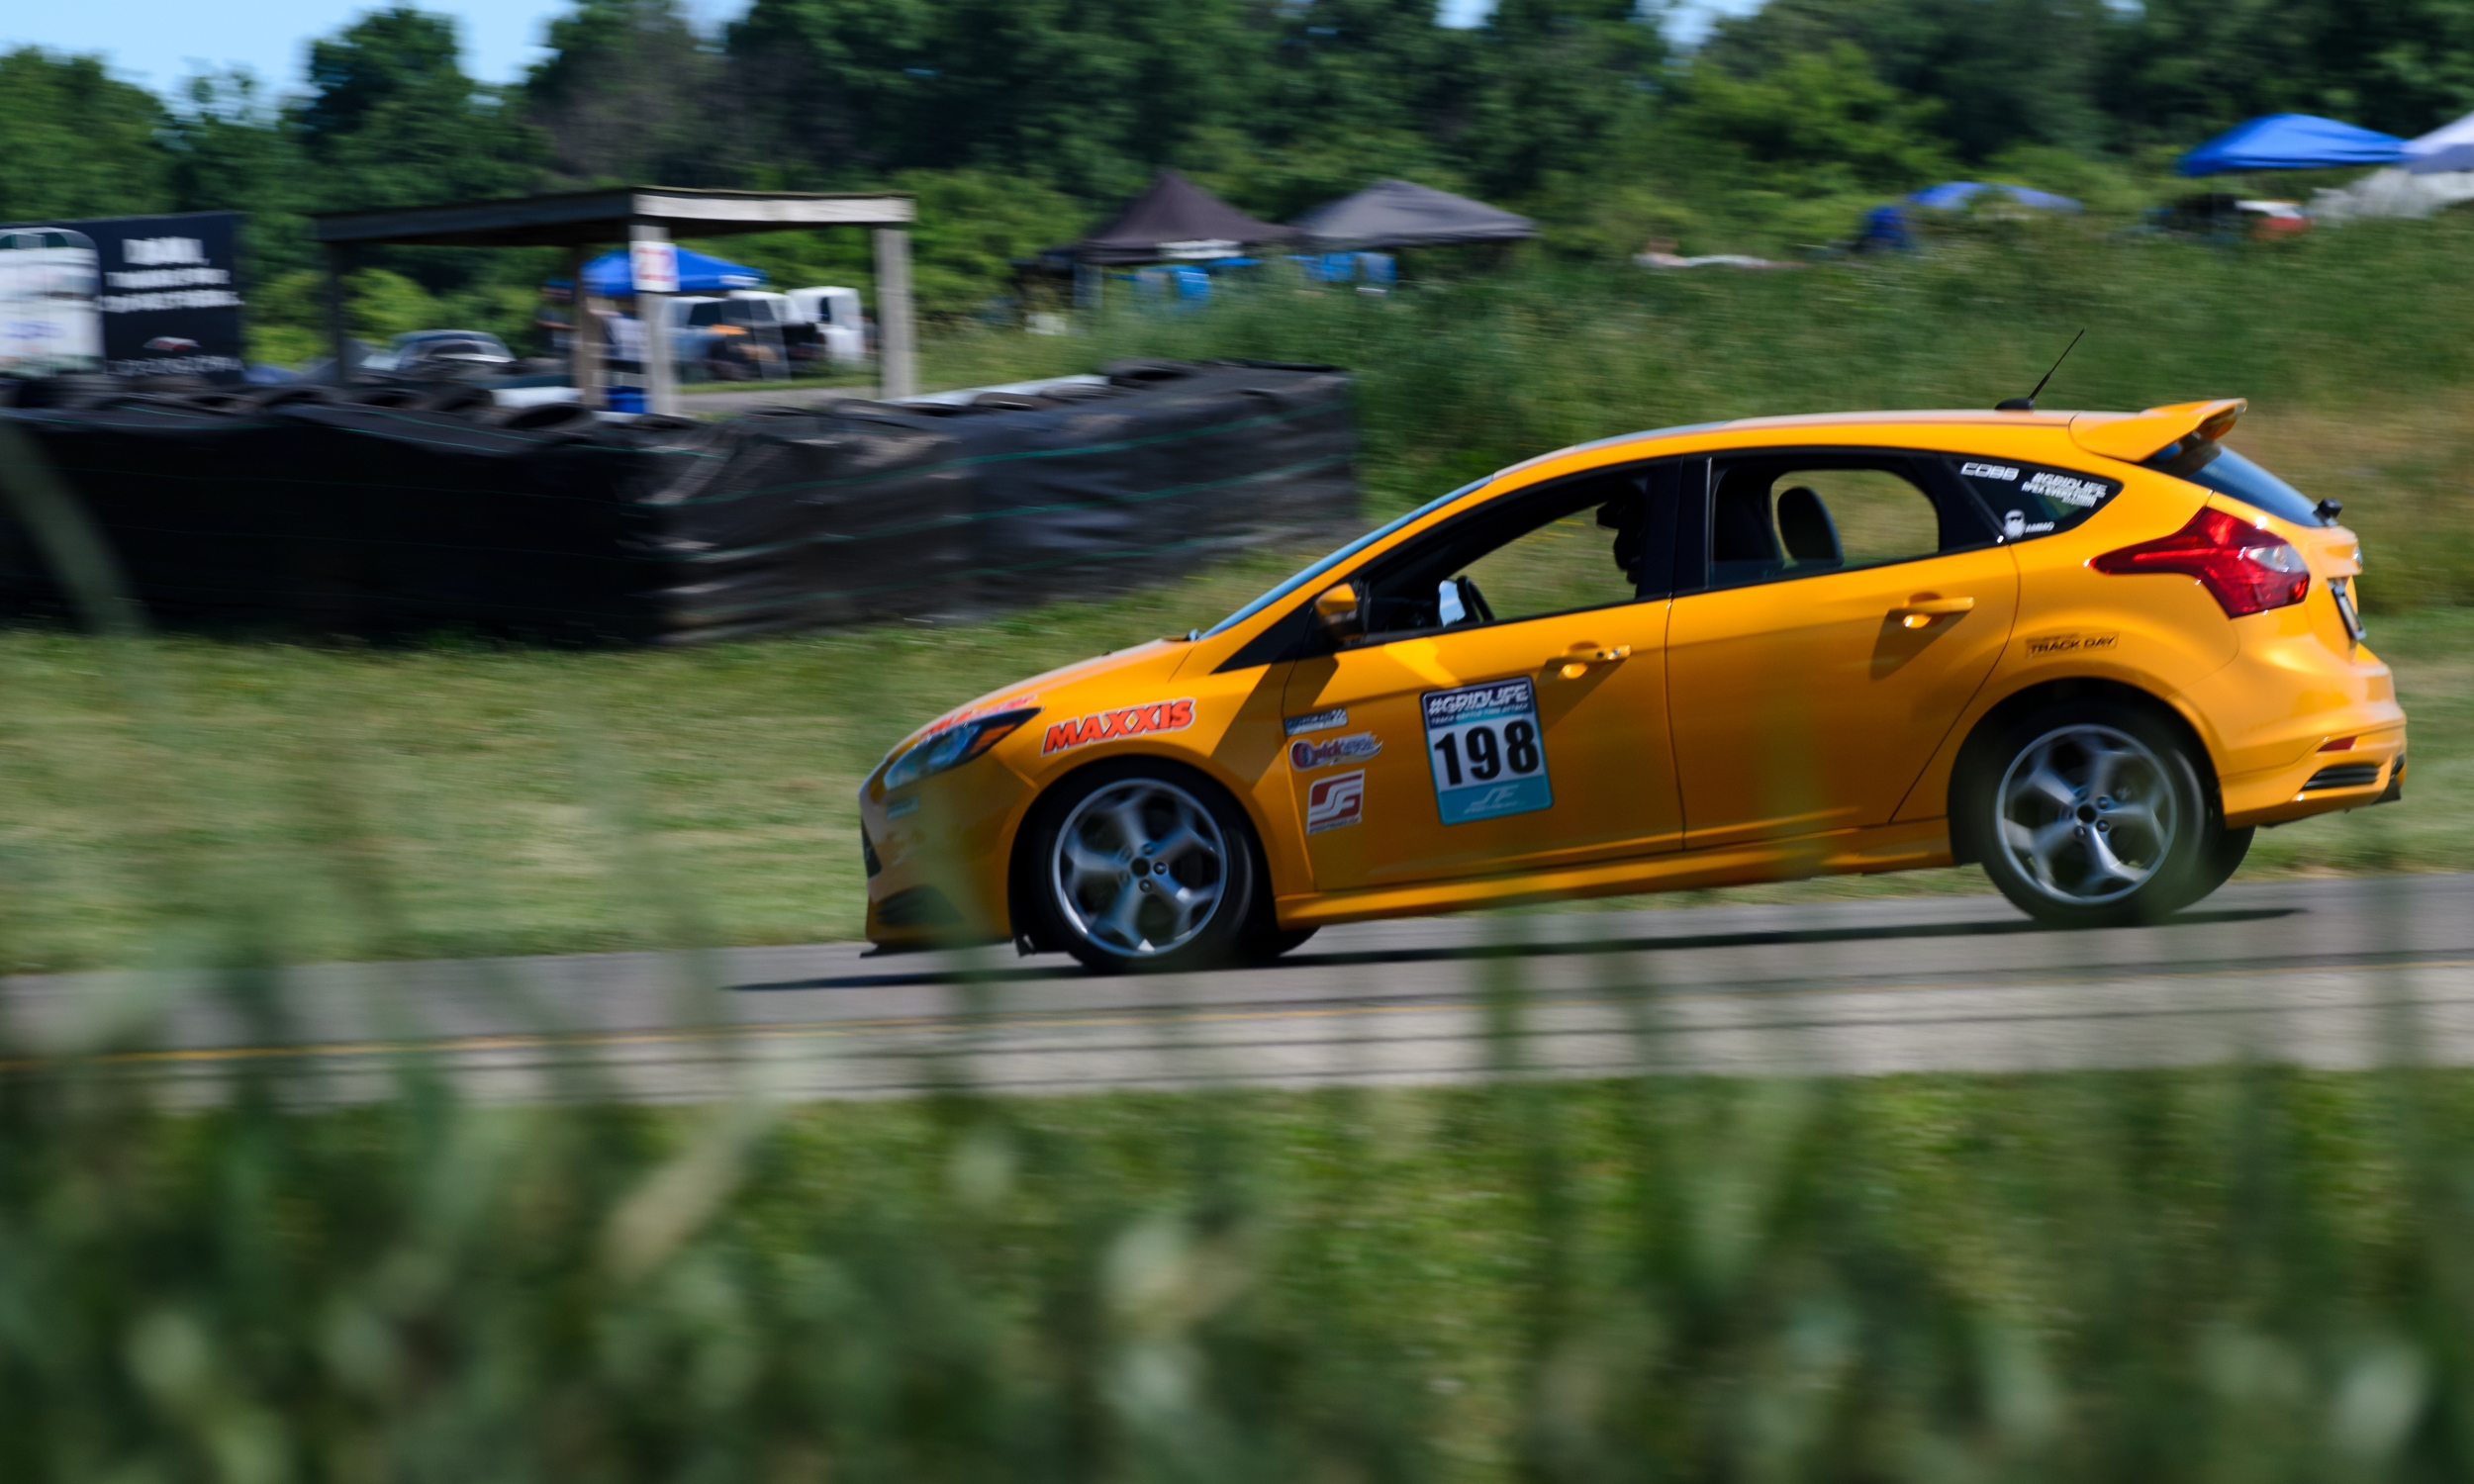 Just look at that nose dive, Not sure how much longer the rear wheels care going to be on the ground so we will round up the top 5 from HPDE with Matthew's Focus ST putting down a time of 1:50.110